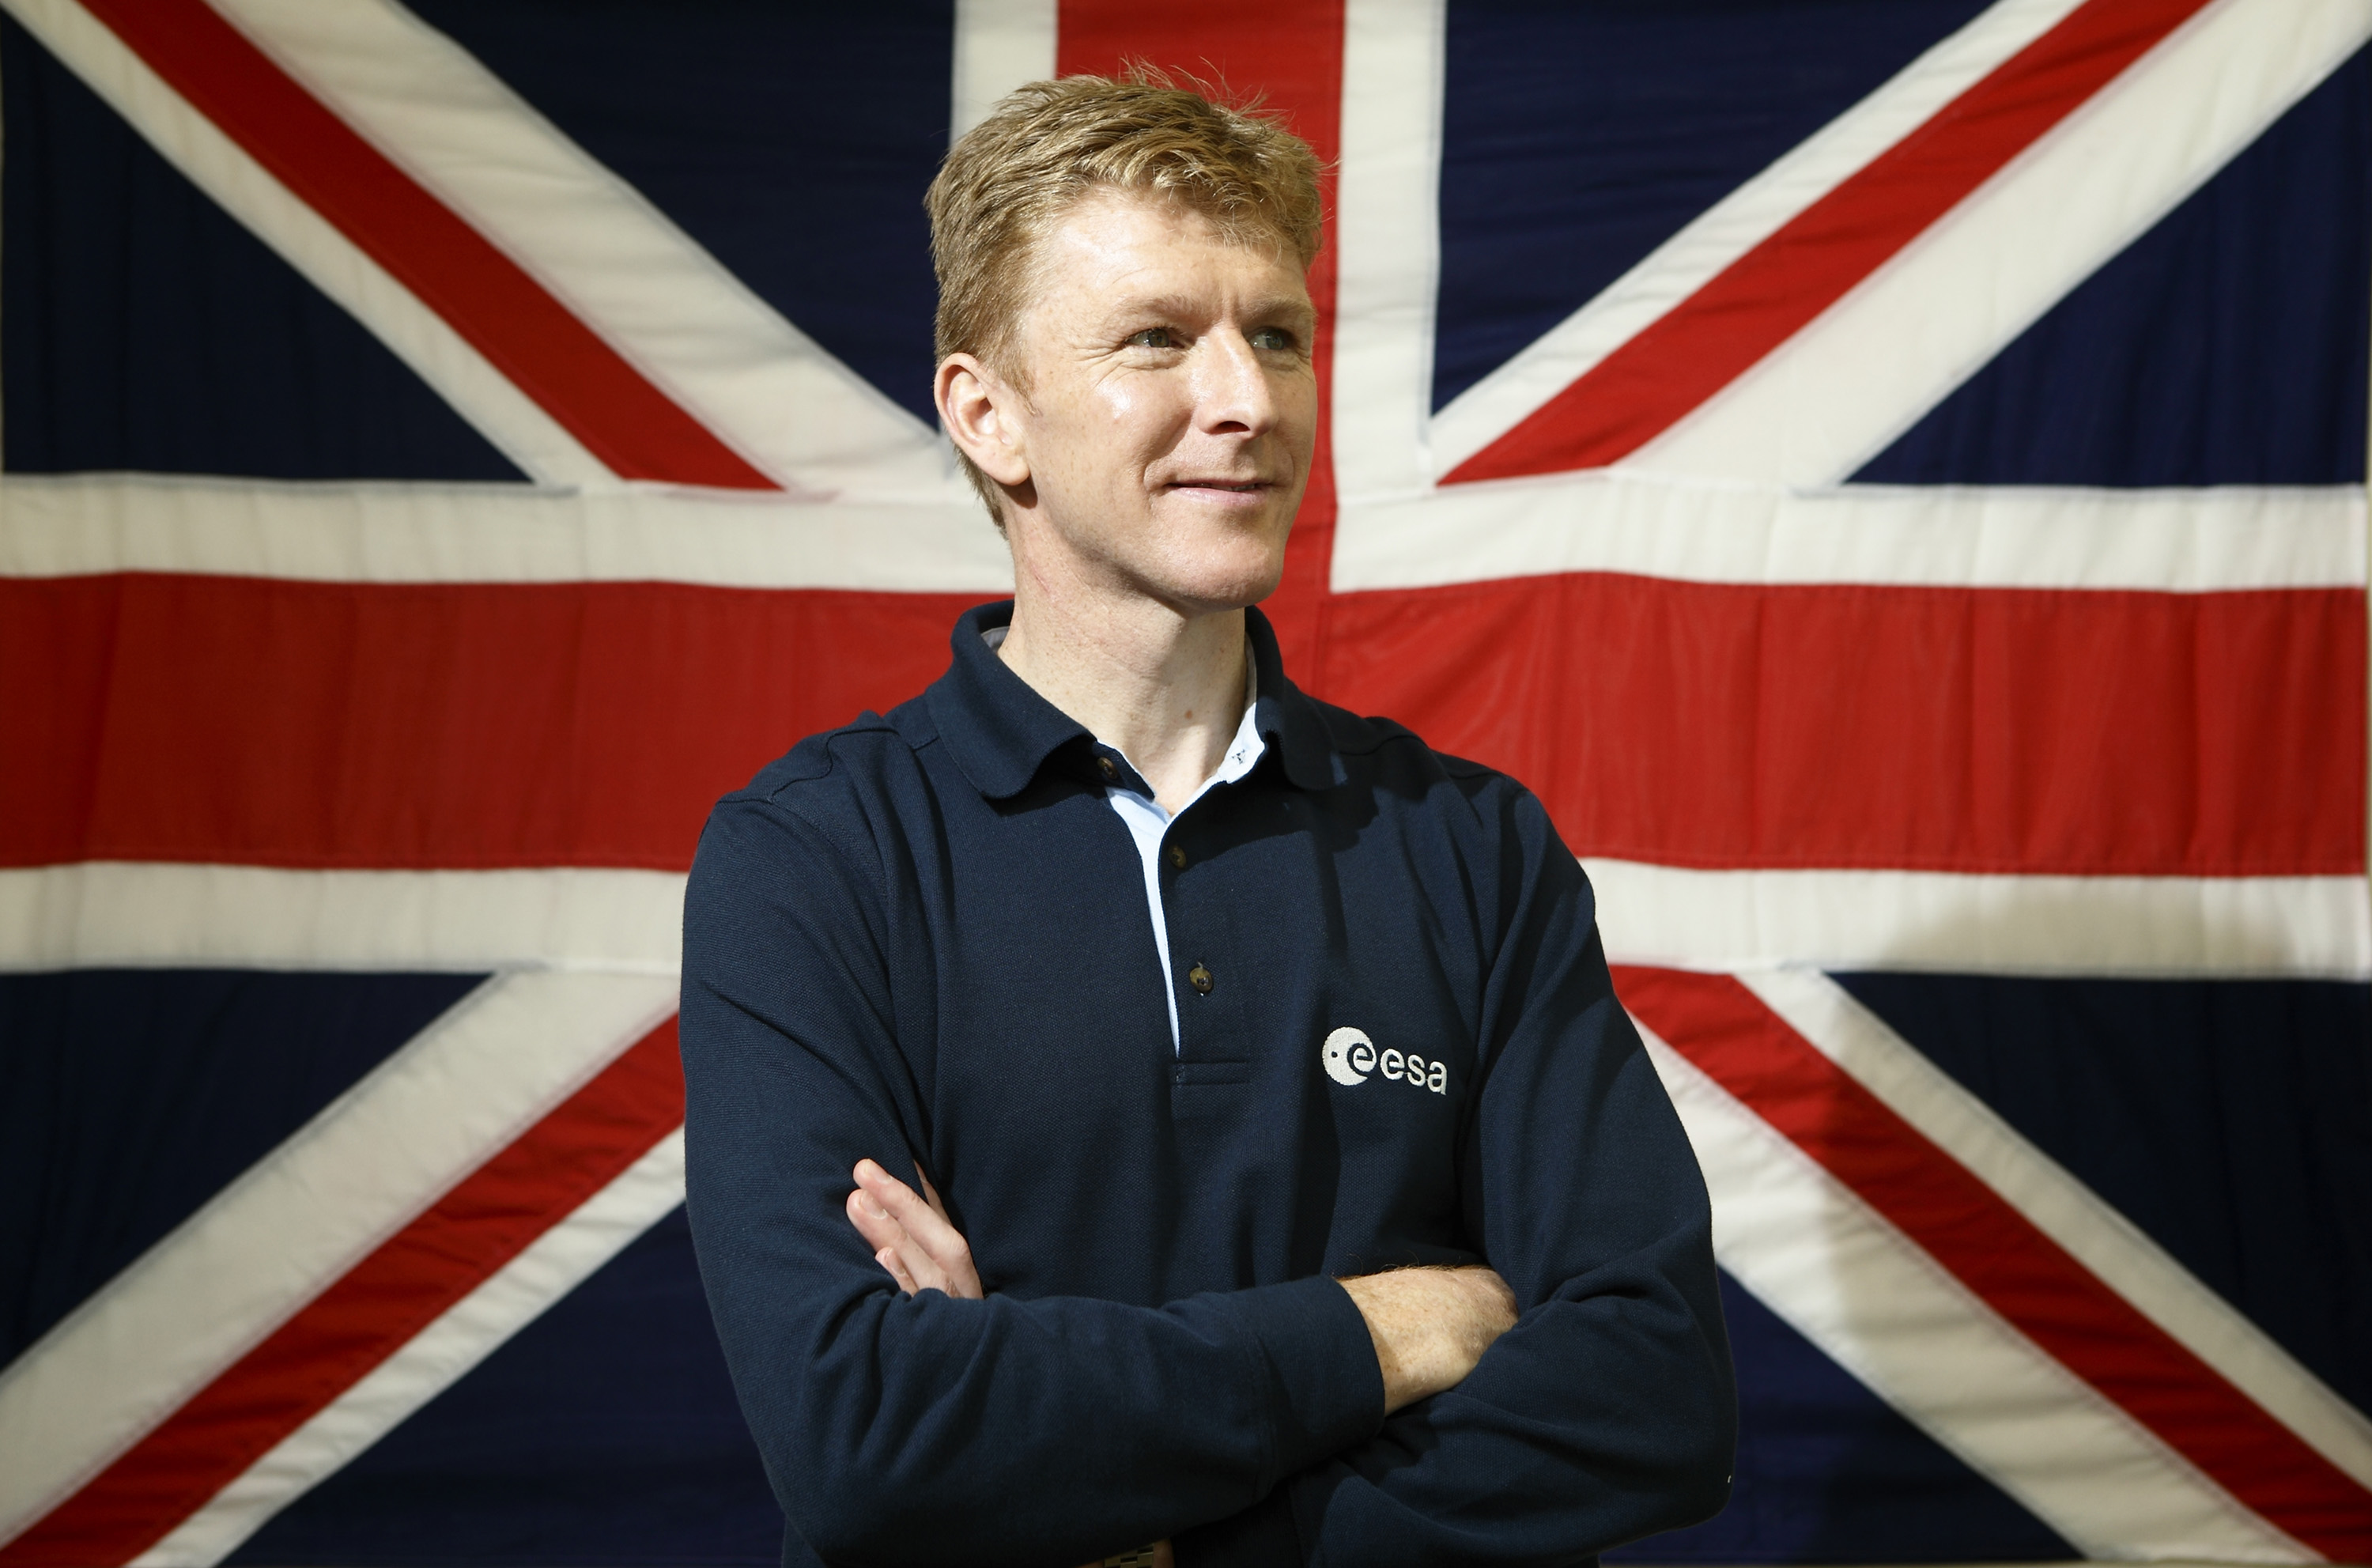 Tim Peake. Photo: Flickr, Department for Business, Innovation and Skills